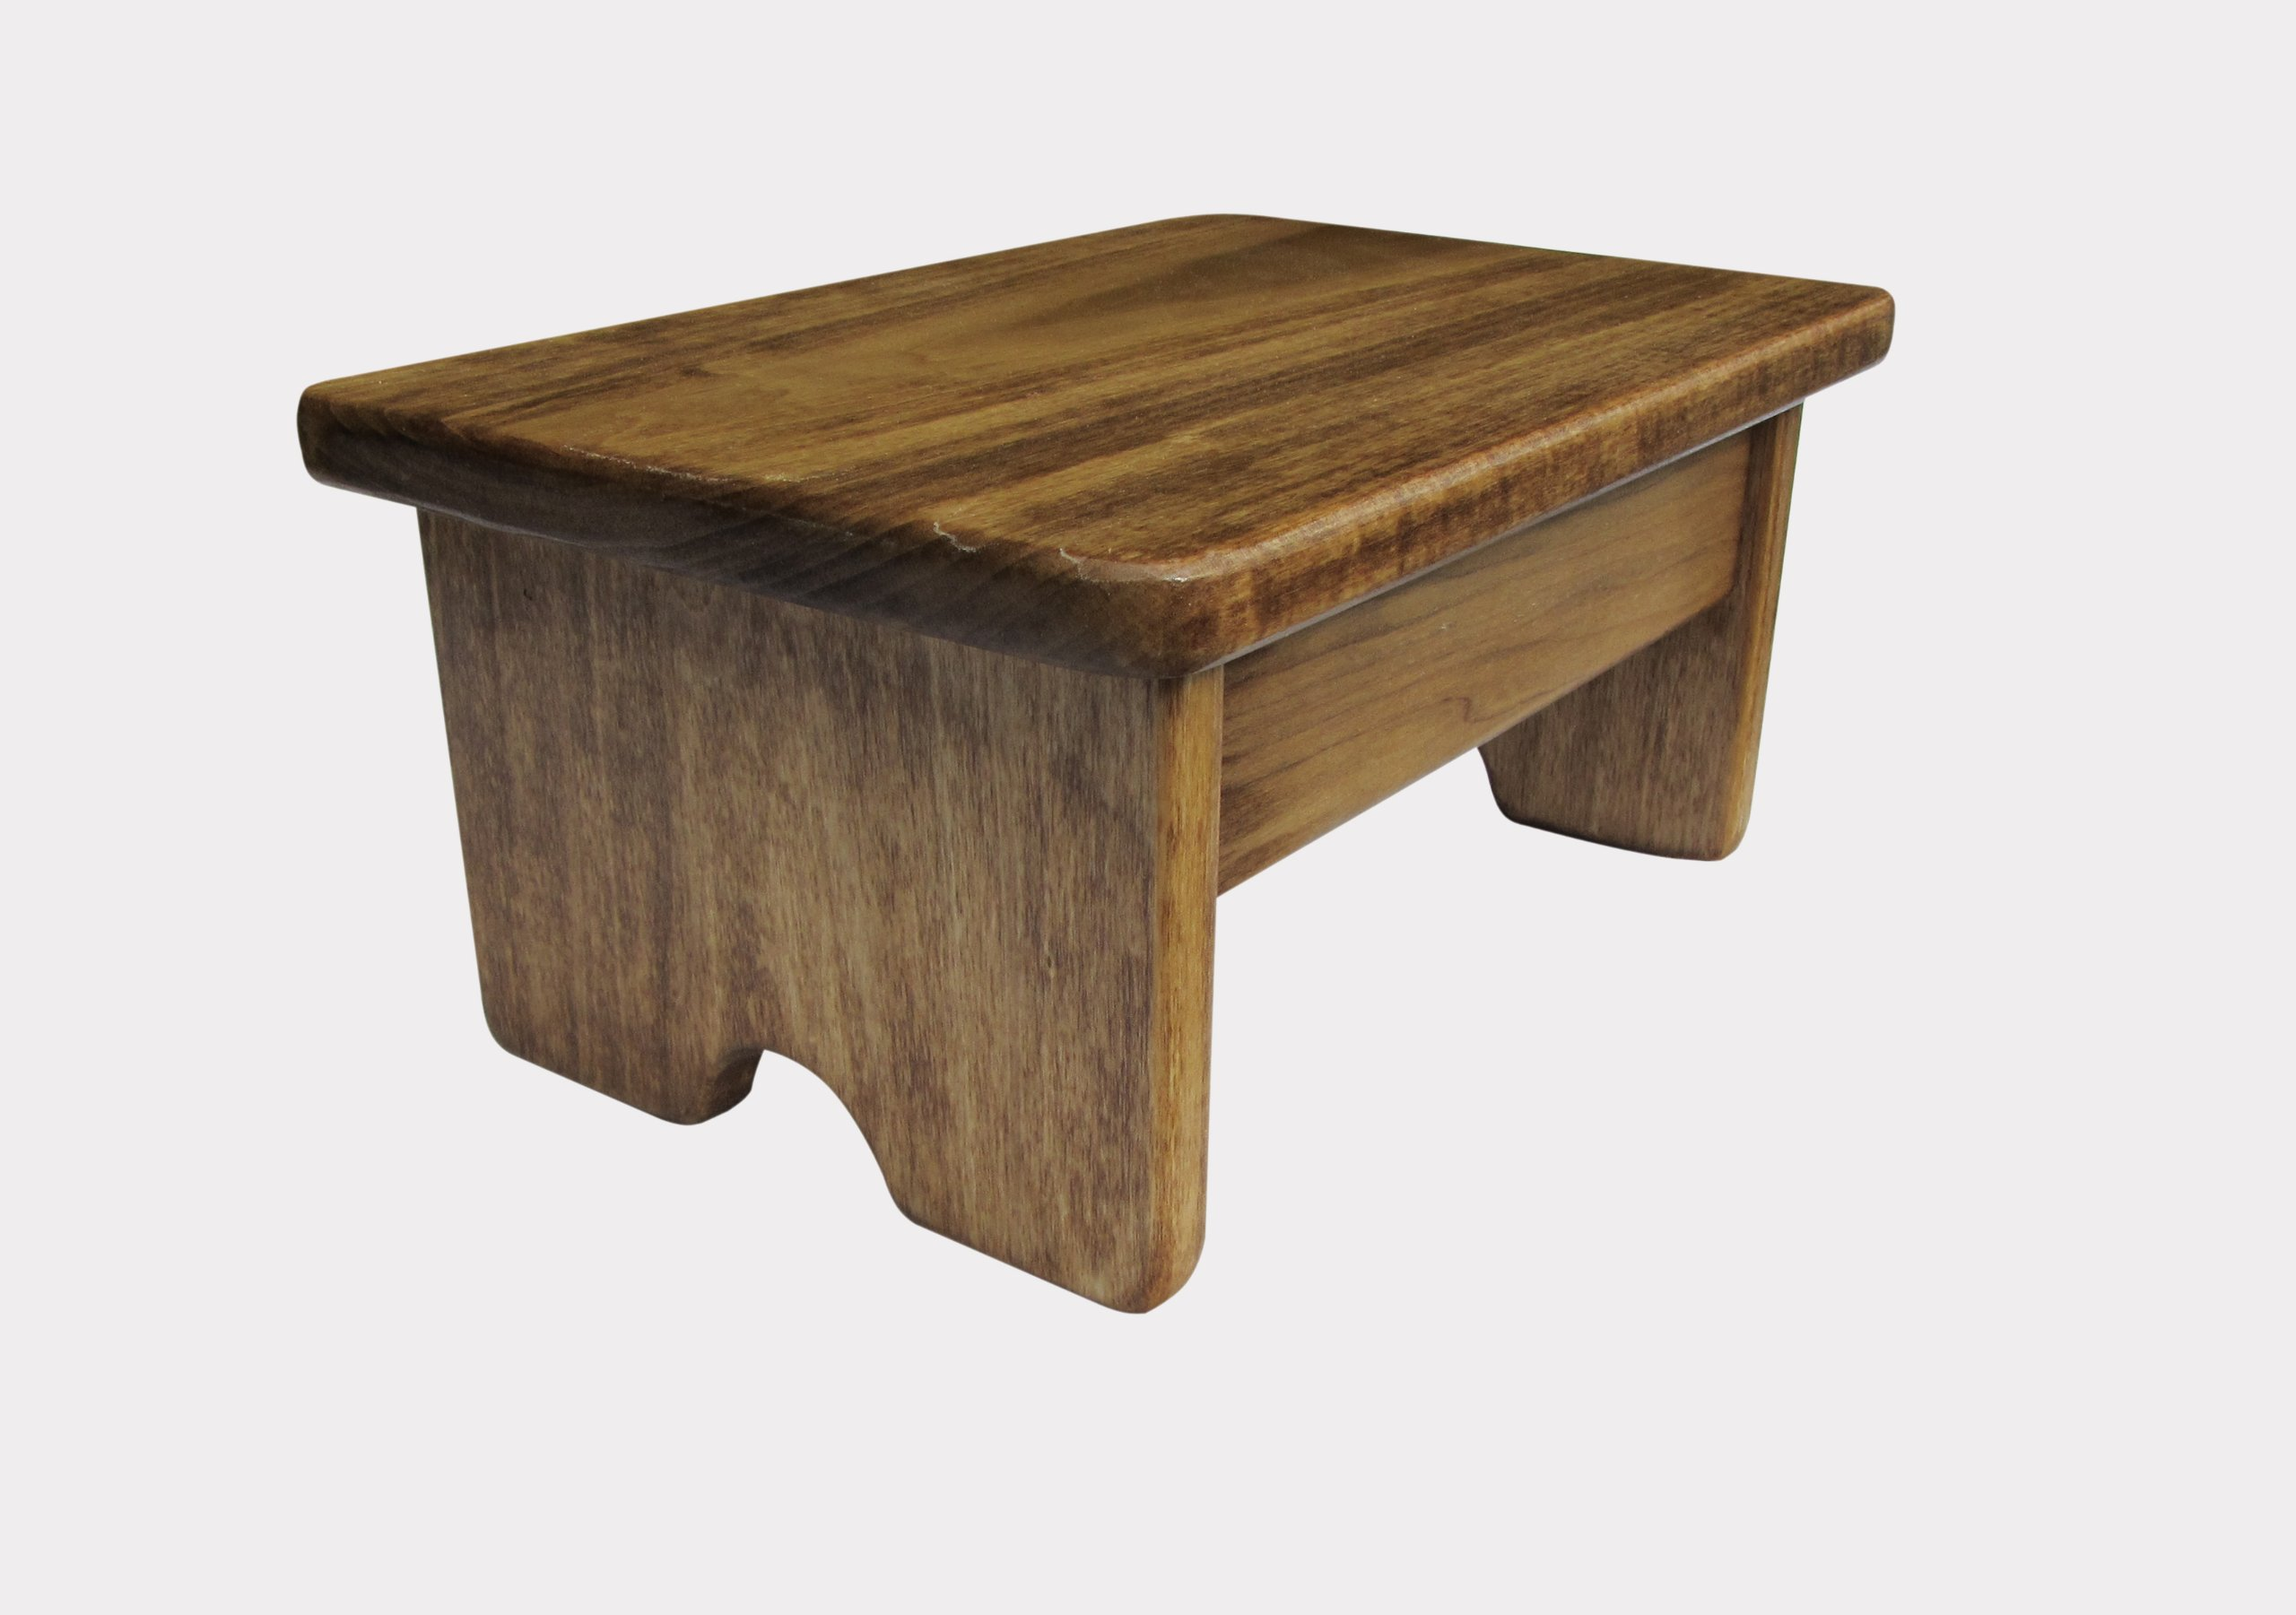 Foot Stool Poplar Wood 7'' Tall Maple Stain (Made in the USA)